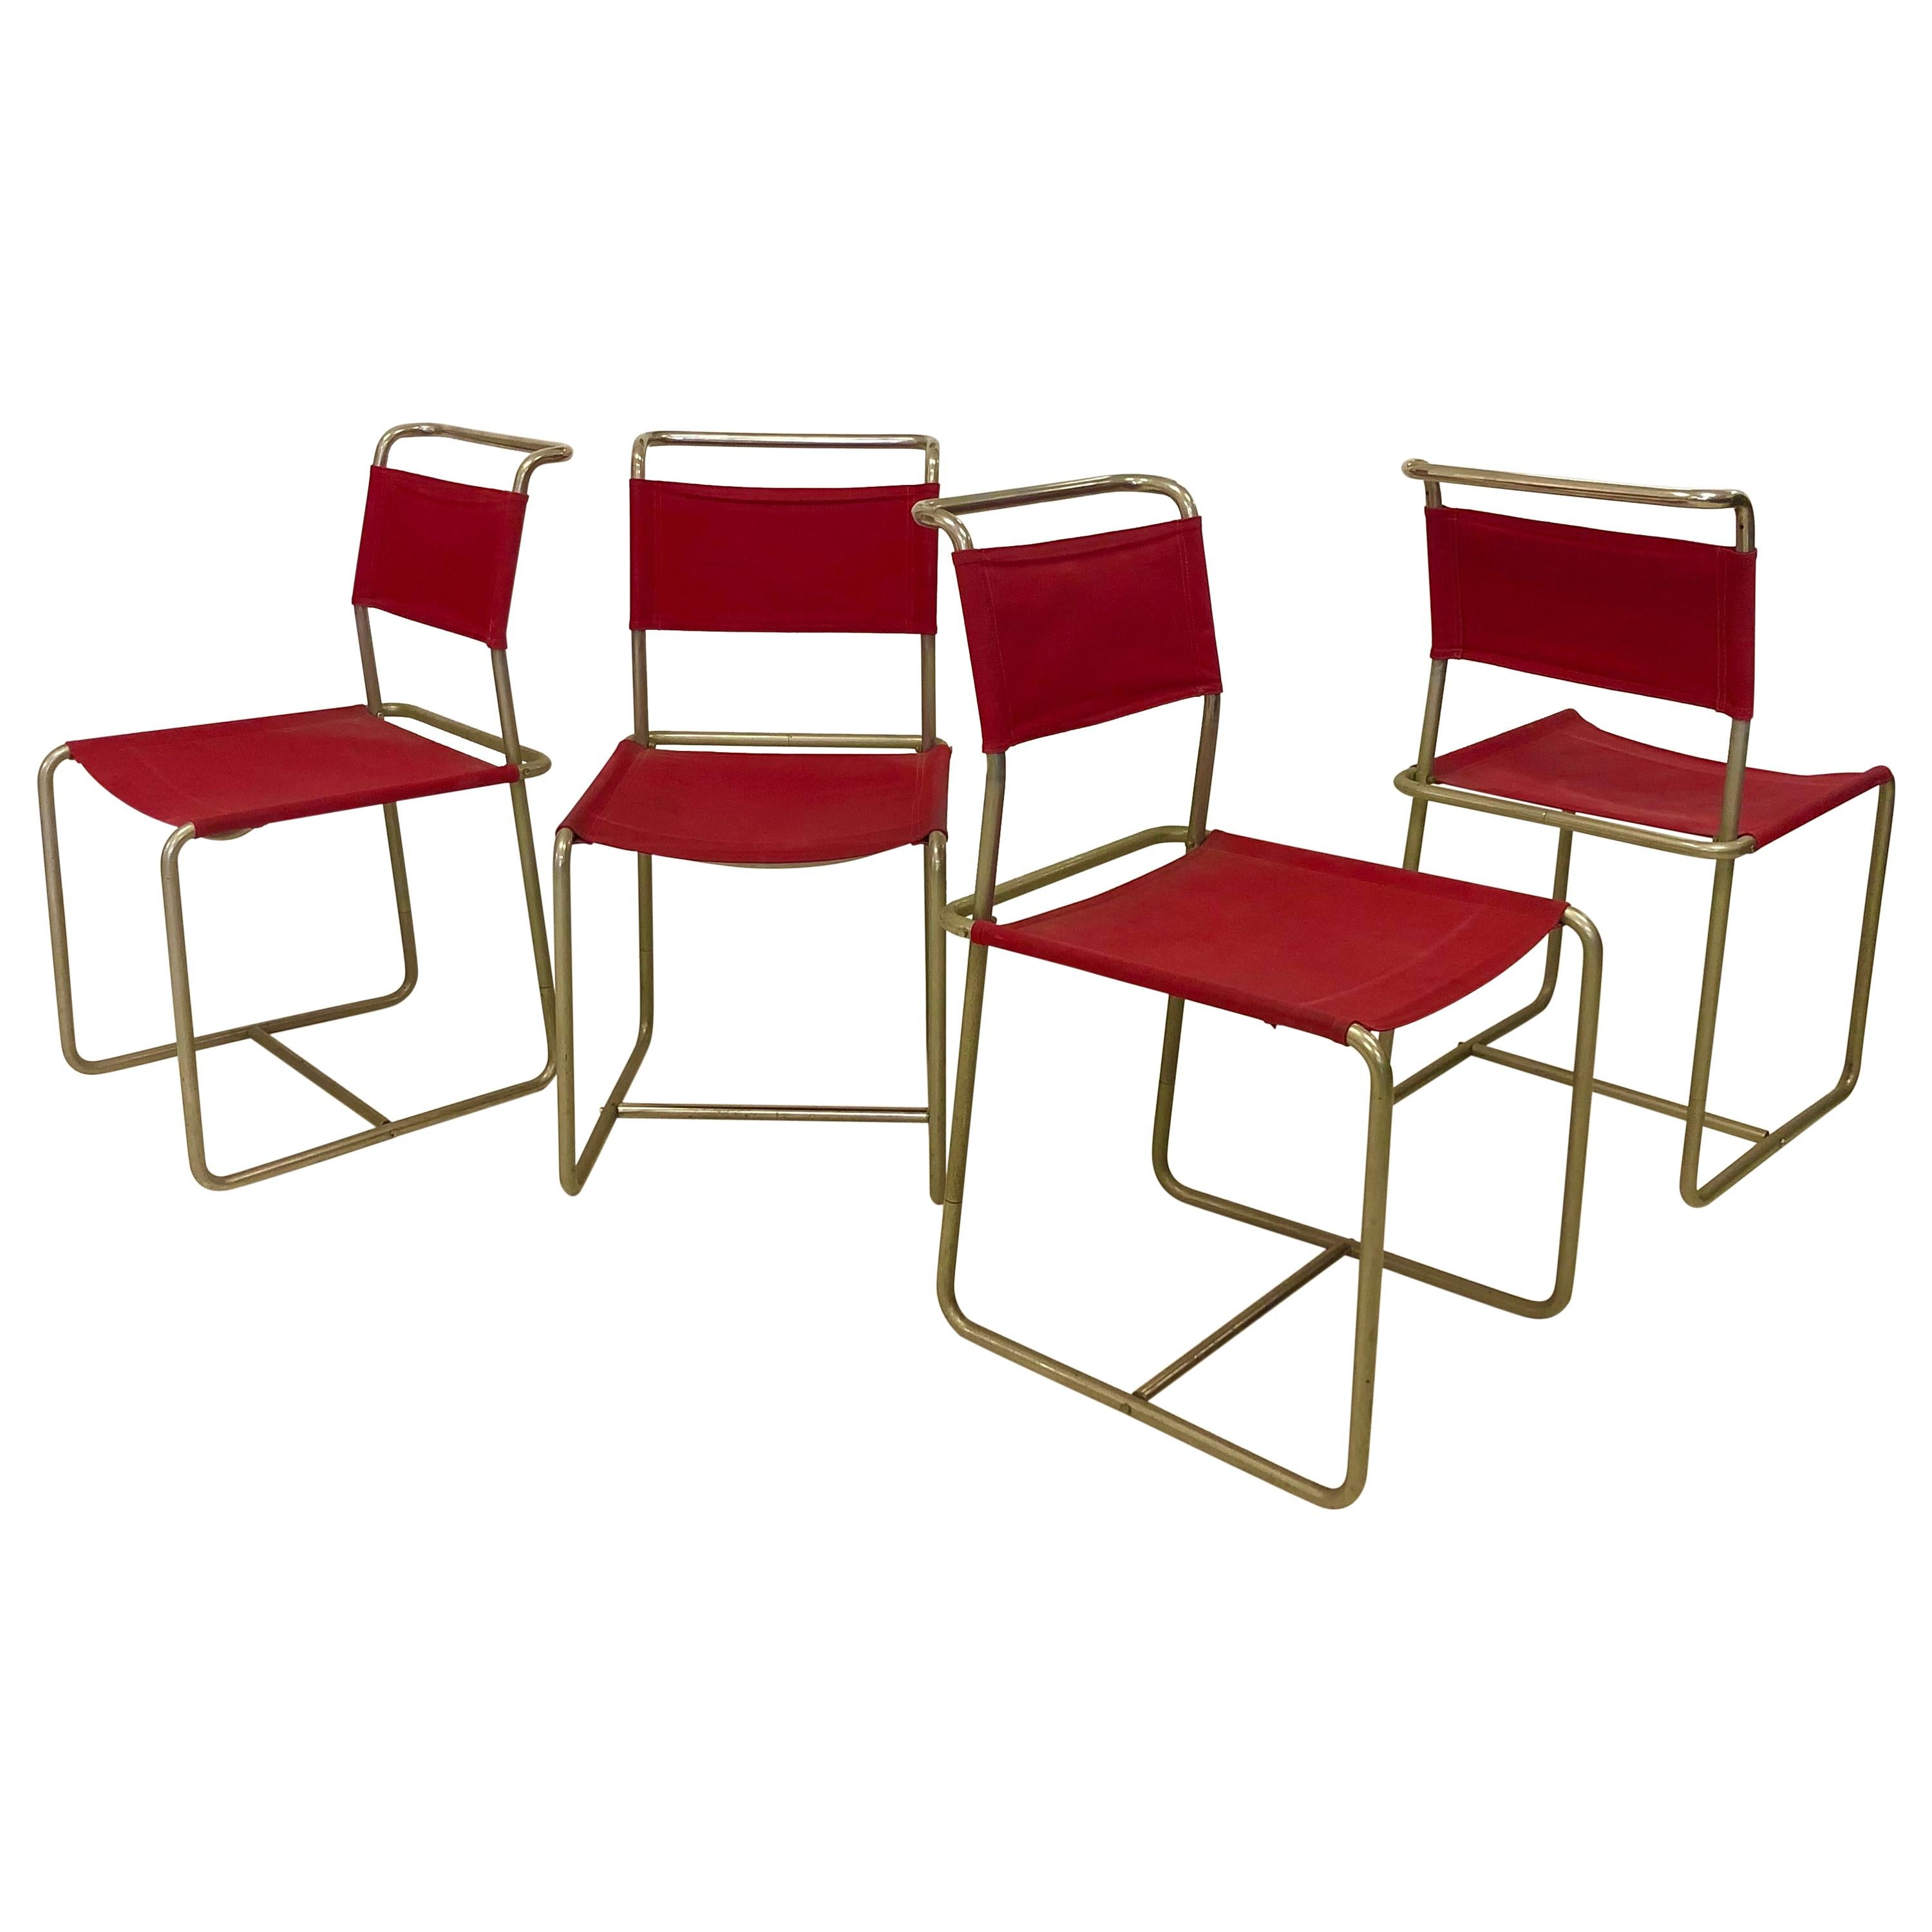 Set 4 Early and Rare Variant Marcel Breuer B5 chair